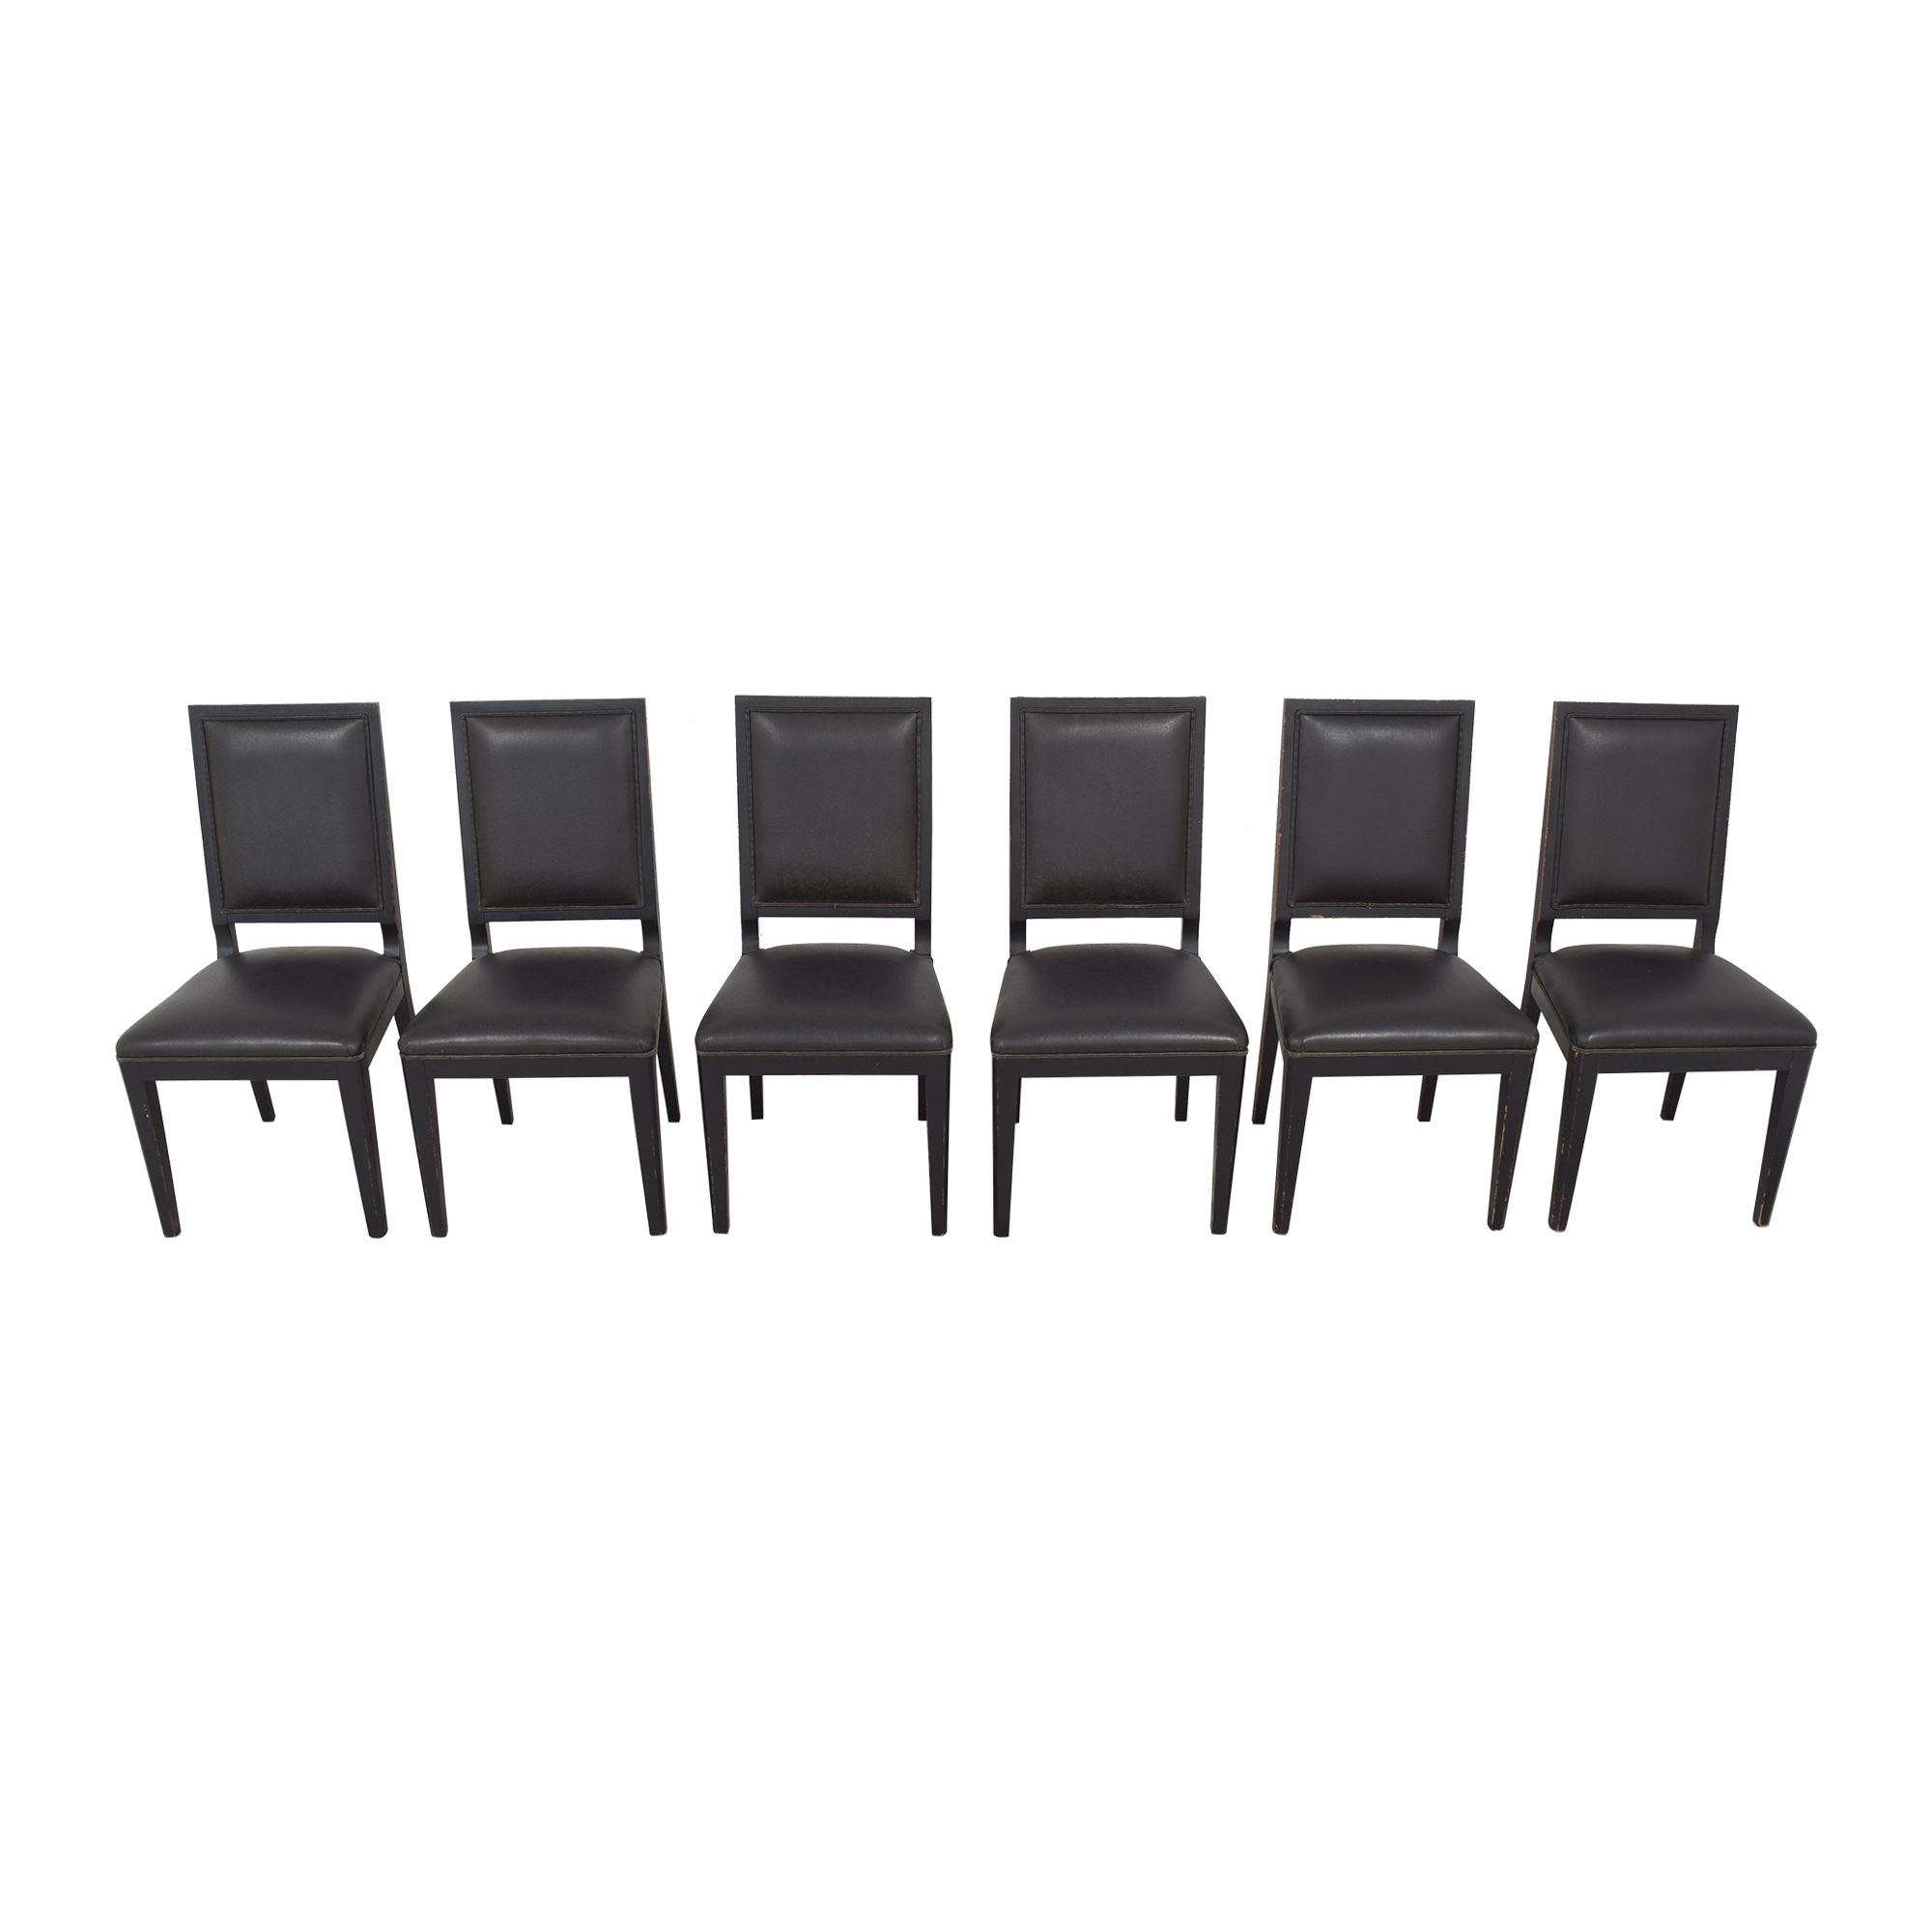 buy Crate & Barrel Crate & Barrel Sonata Dining Chairs online